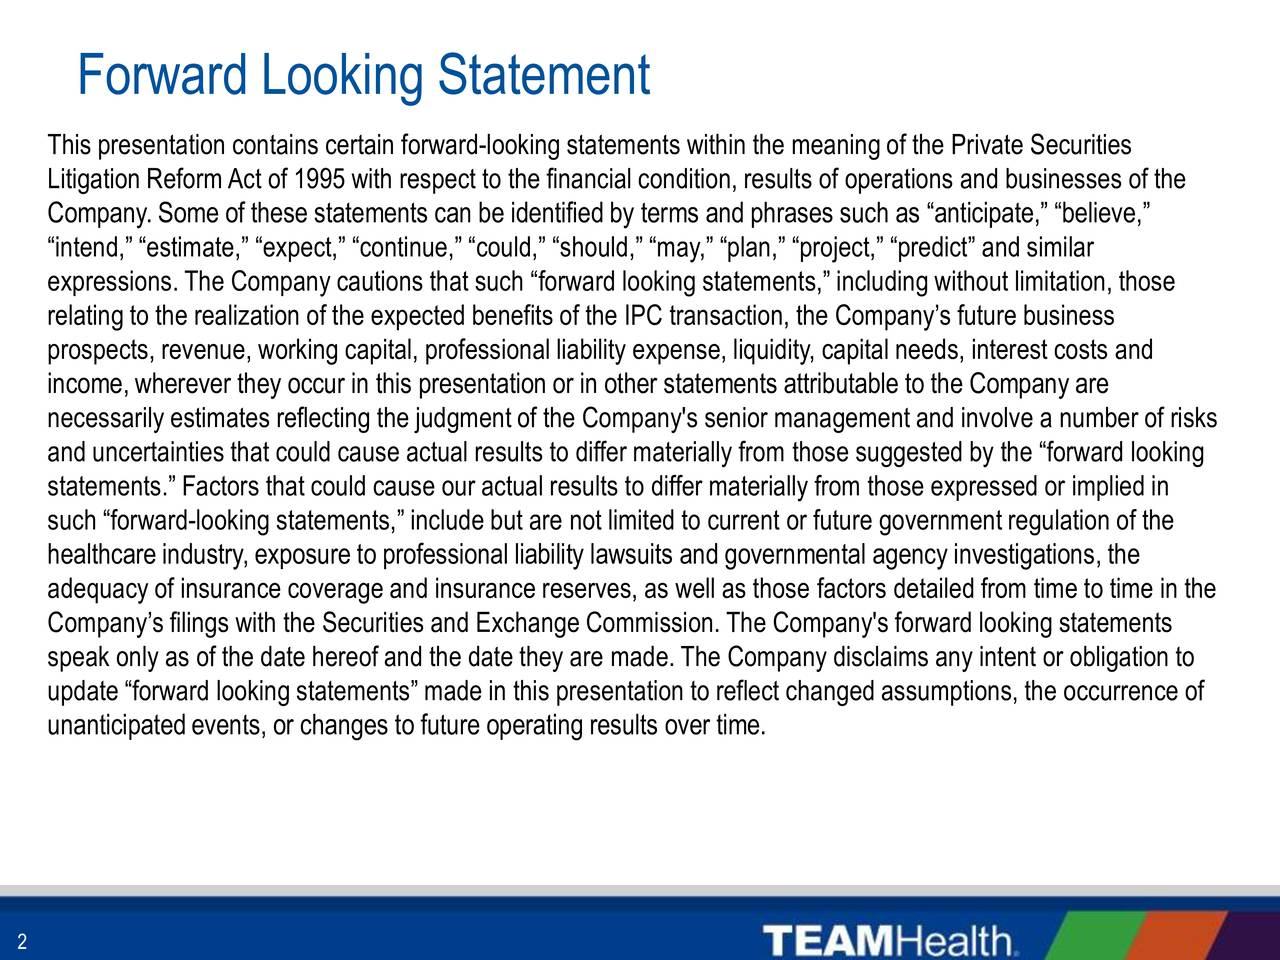 This presentation contains certain forward-looking statements within the meaning of the Private Securities Litigation ReformAct of 1995 with respect to the financial condition, results of operations and businesses of the Company. Some of these statements can be identified by terms and phrases such as anticipate, believe, intend, estimate, expect, continue, could, should, may, plan, project, predict and similar expressions. The Company cautions that such forward looking statements, including without limitation, those relating to the realization of the expected benefits of the IPC transaction, the Companys future business prospects, revenue, working capital, professional liability expense, liquidity, capital needs, interest costs and income, wherever they occur in this presentation or in other statements attributable to the Company are necessarily estimates reflecting the judgment of the Company's senior management and involve a number of risks and uncertainties that could cause actual results to differ materially from those suggested by the forward looking statements. Factors that could cause our actual results to differ materially from those expressed or implied in such forward-looking statements, include but are not limited to current or future government regulation of the healthcare industry, exposure to professional liability lawsuits and governmental agency investigations, the adequacy of insurance coverage and insurance reserves, as well as those factors detailed from time to time in the Companys filings with the Securities and Exchange Commission. The Company's forward looking statements speak only as of the date hereof and the date they are made. The Company disclaims any intent or obligation to update forward looking statements made in this presentation to reflect changed assumptions, the occurrence of unanticipated events, or changes to future operating results over time.